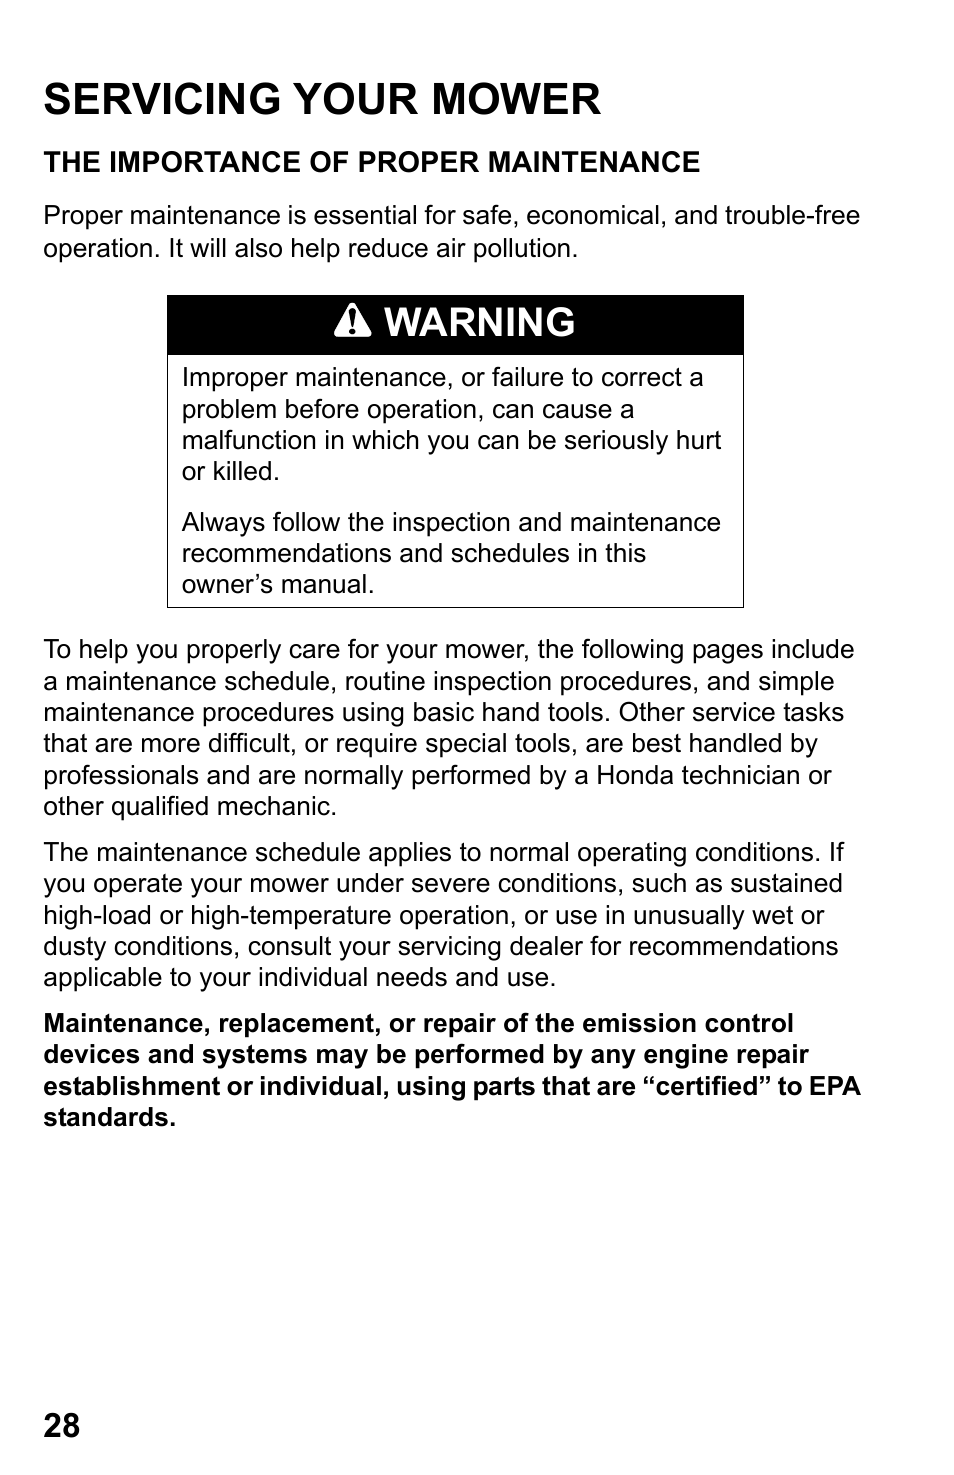 Servicing your mower, The importance of proper maintenance, Warning | HONDA  HRR216TDA User Manual | Page 30 / 72